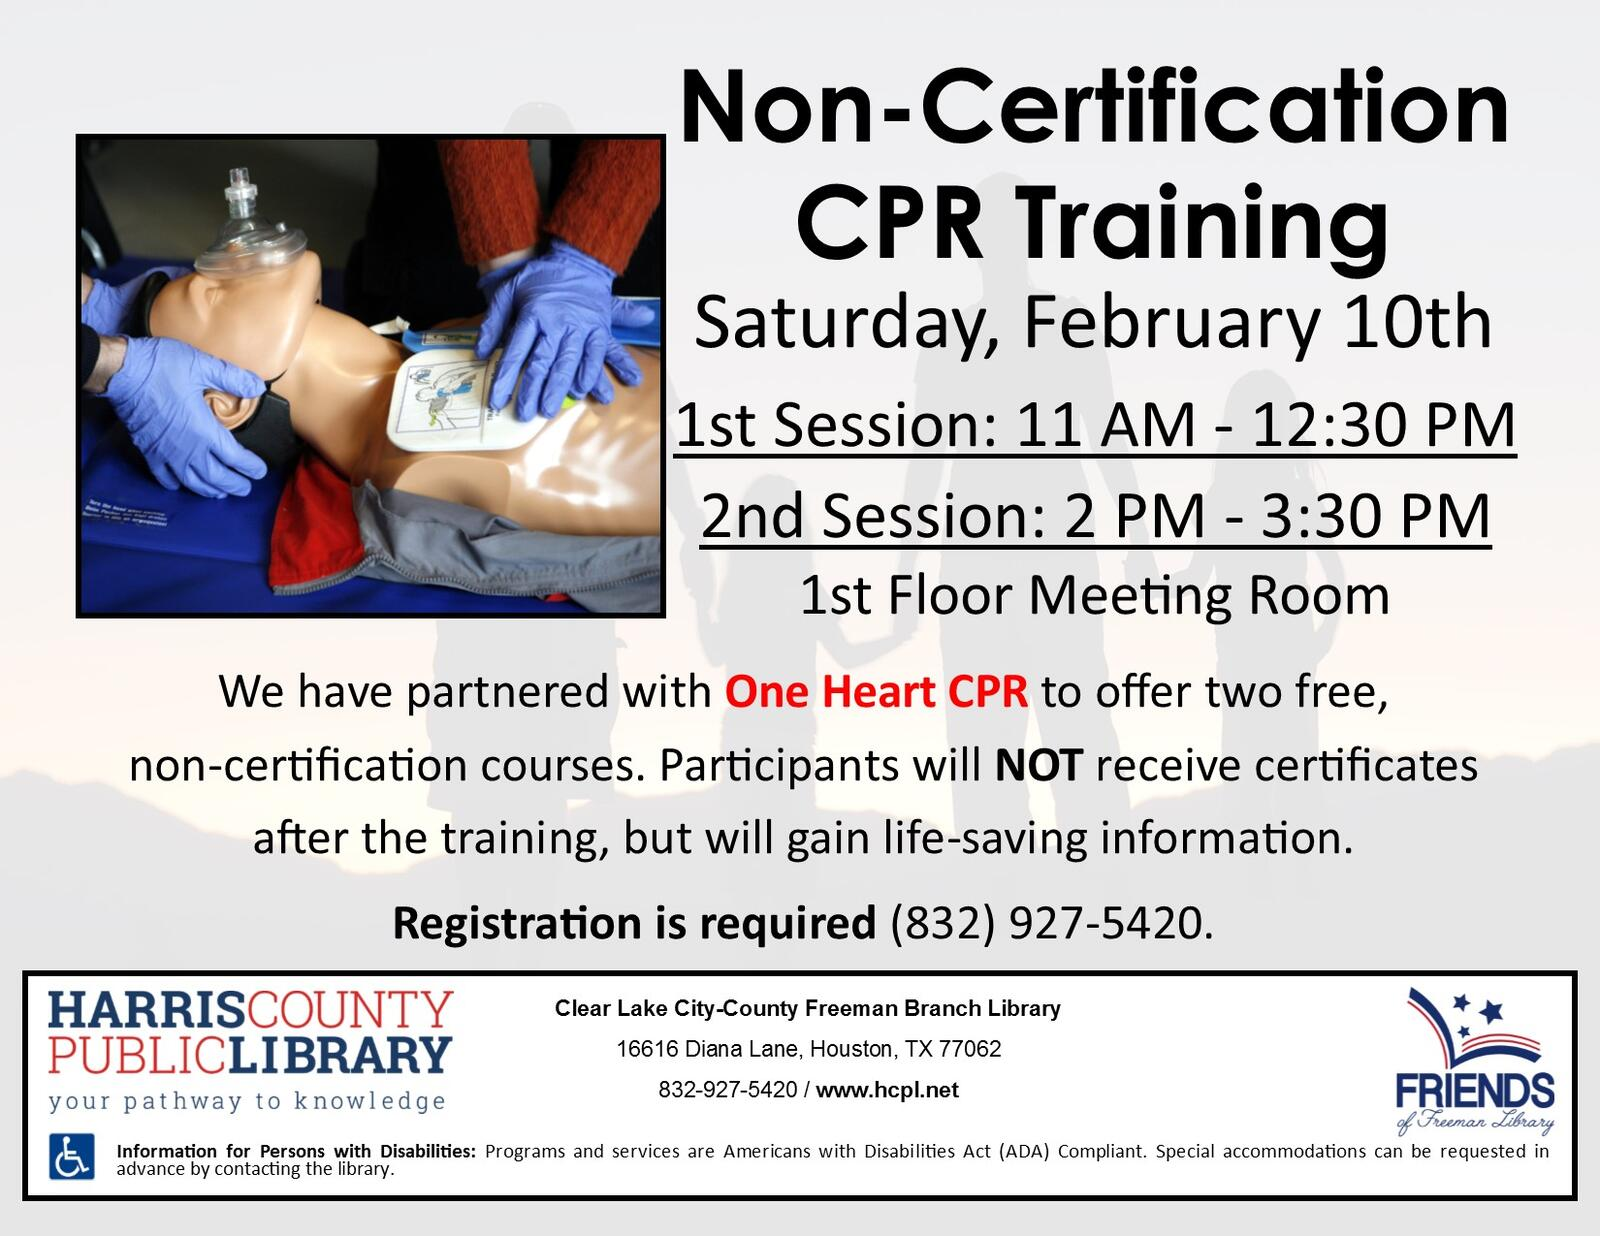 Free non certification cpr course at freeman harris county public free non certification cpr course at freeman harris county public libraries nextdoor xflitez Choice Image